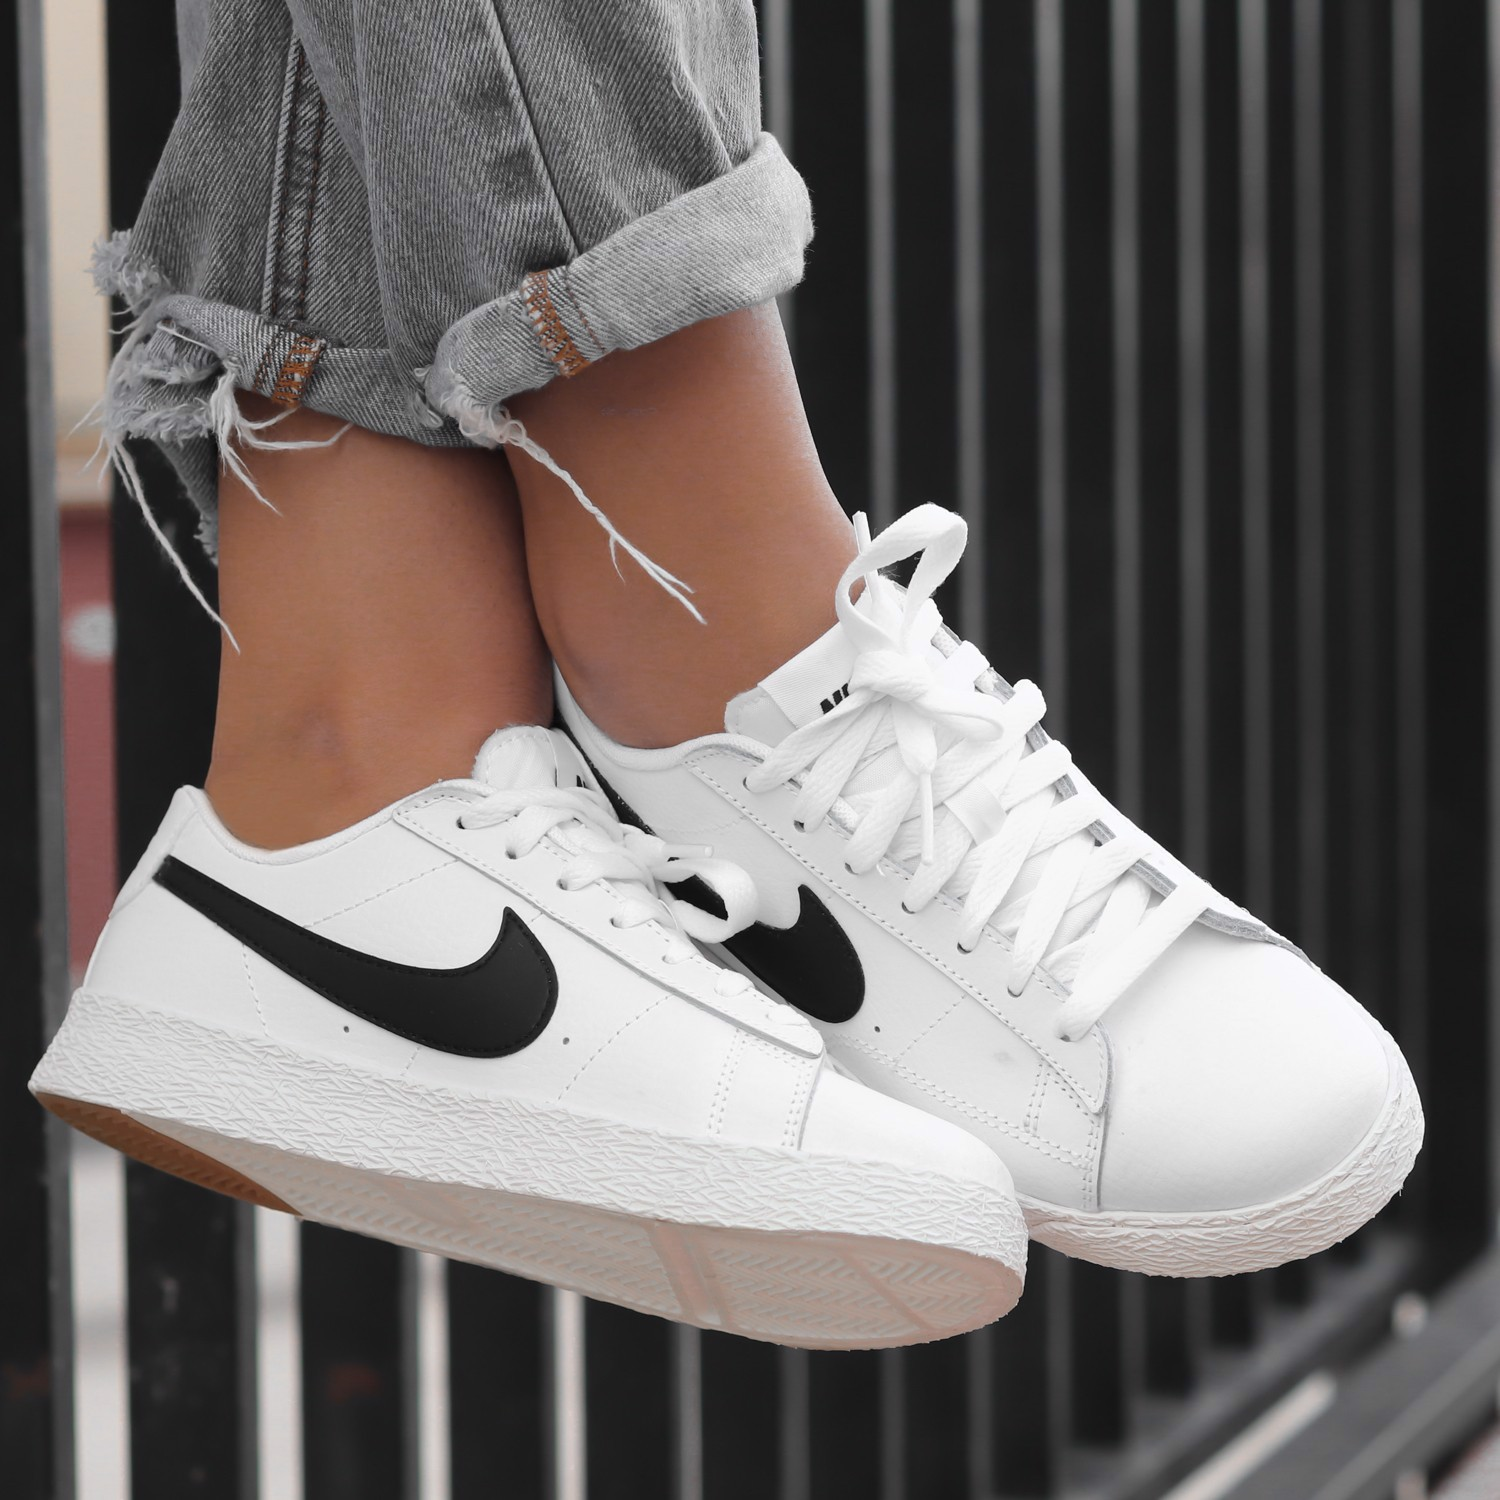 Nike Blazer Low GS 'White Black' CZ7576-103